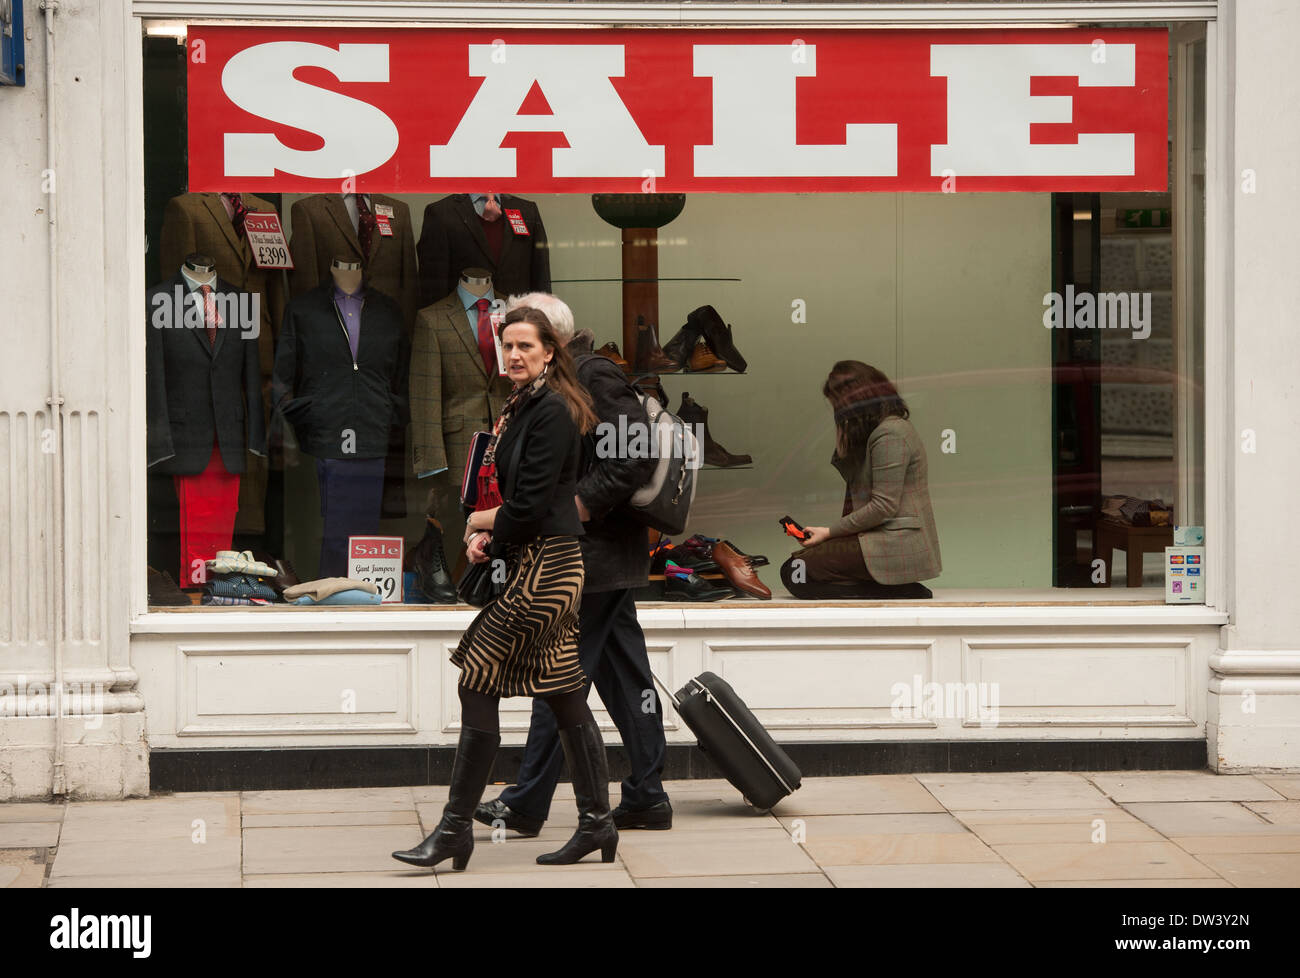 s assistant shoes stock photos s assistant shoes stock a shop assistant stocks up a shop window in the city of london stock